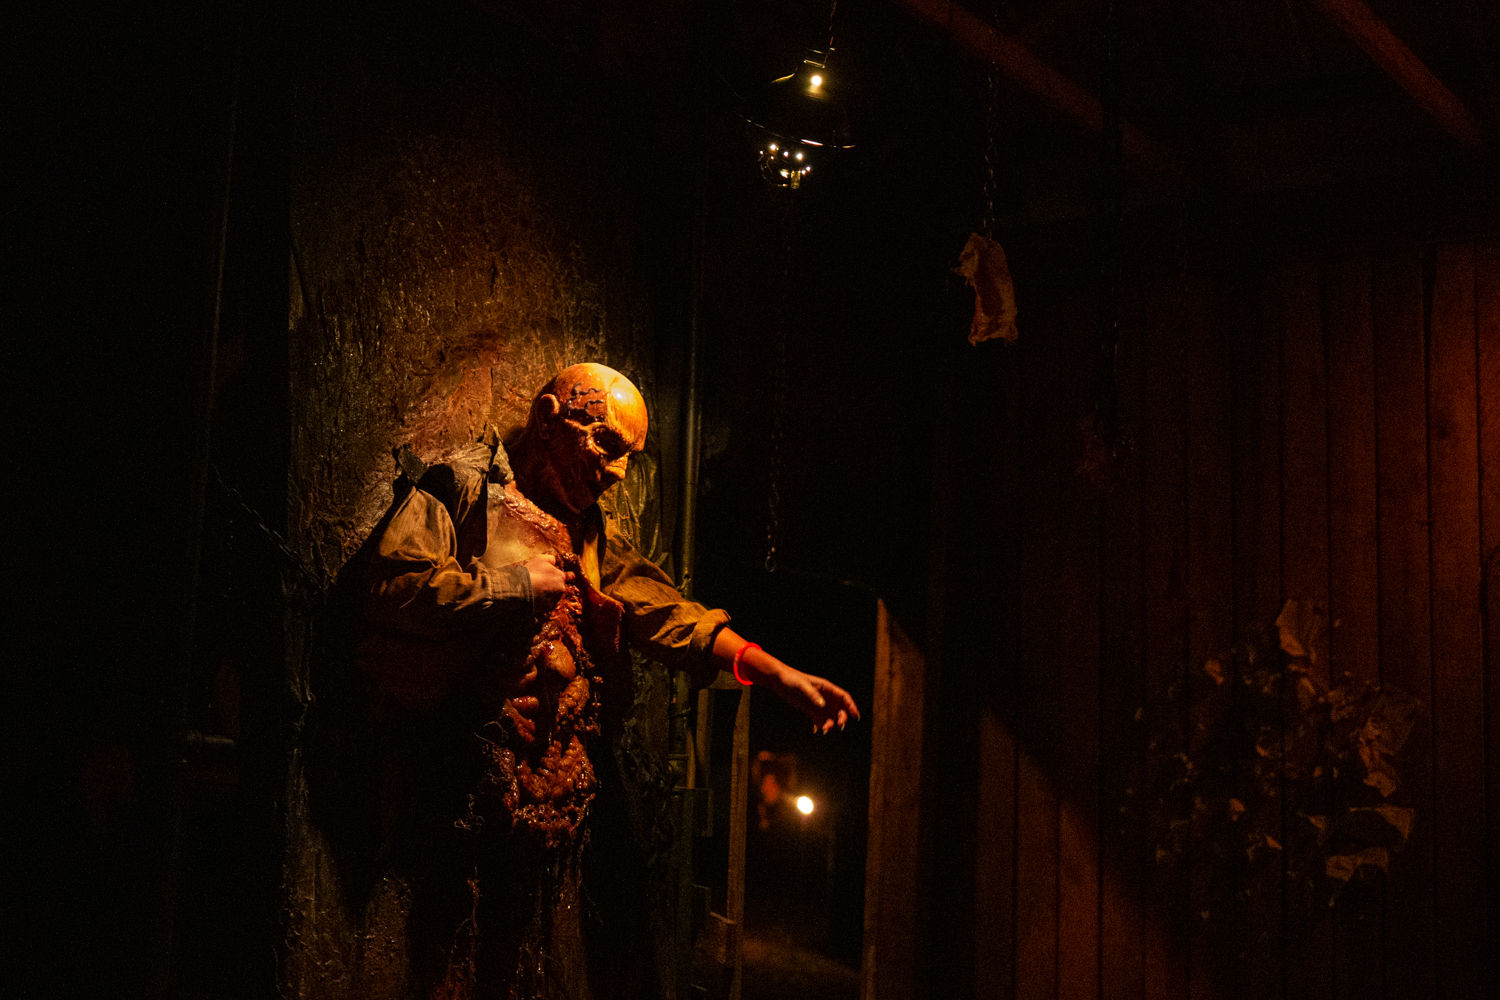 The haunted trail is the main attraction of Terror Town. Instead of having to wait in line for it, you enter a digital queue and are sent a text when it's your time to walk through it. / Image: Catherine Viox // Published: 10.20.19